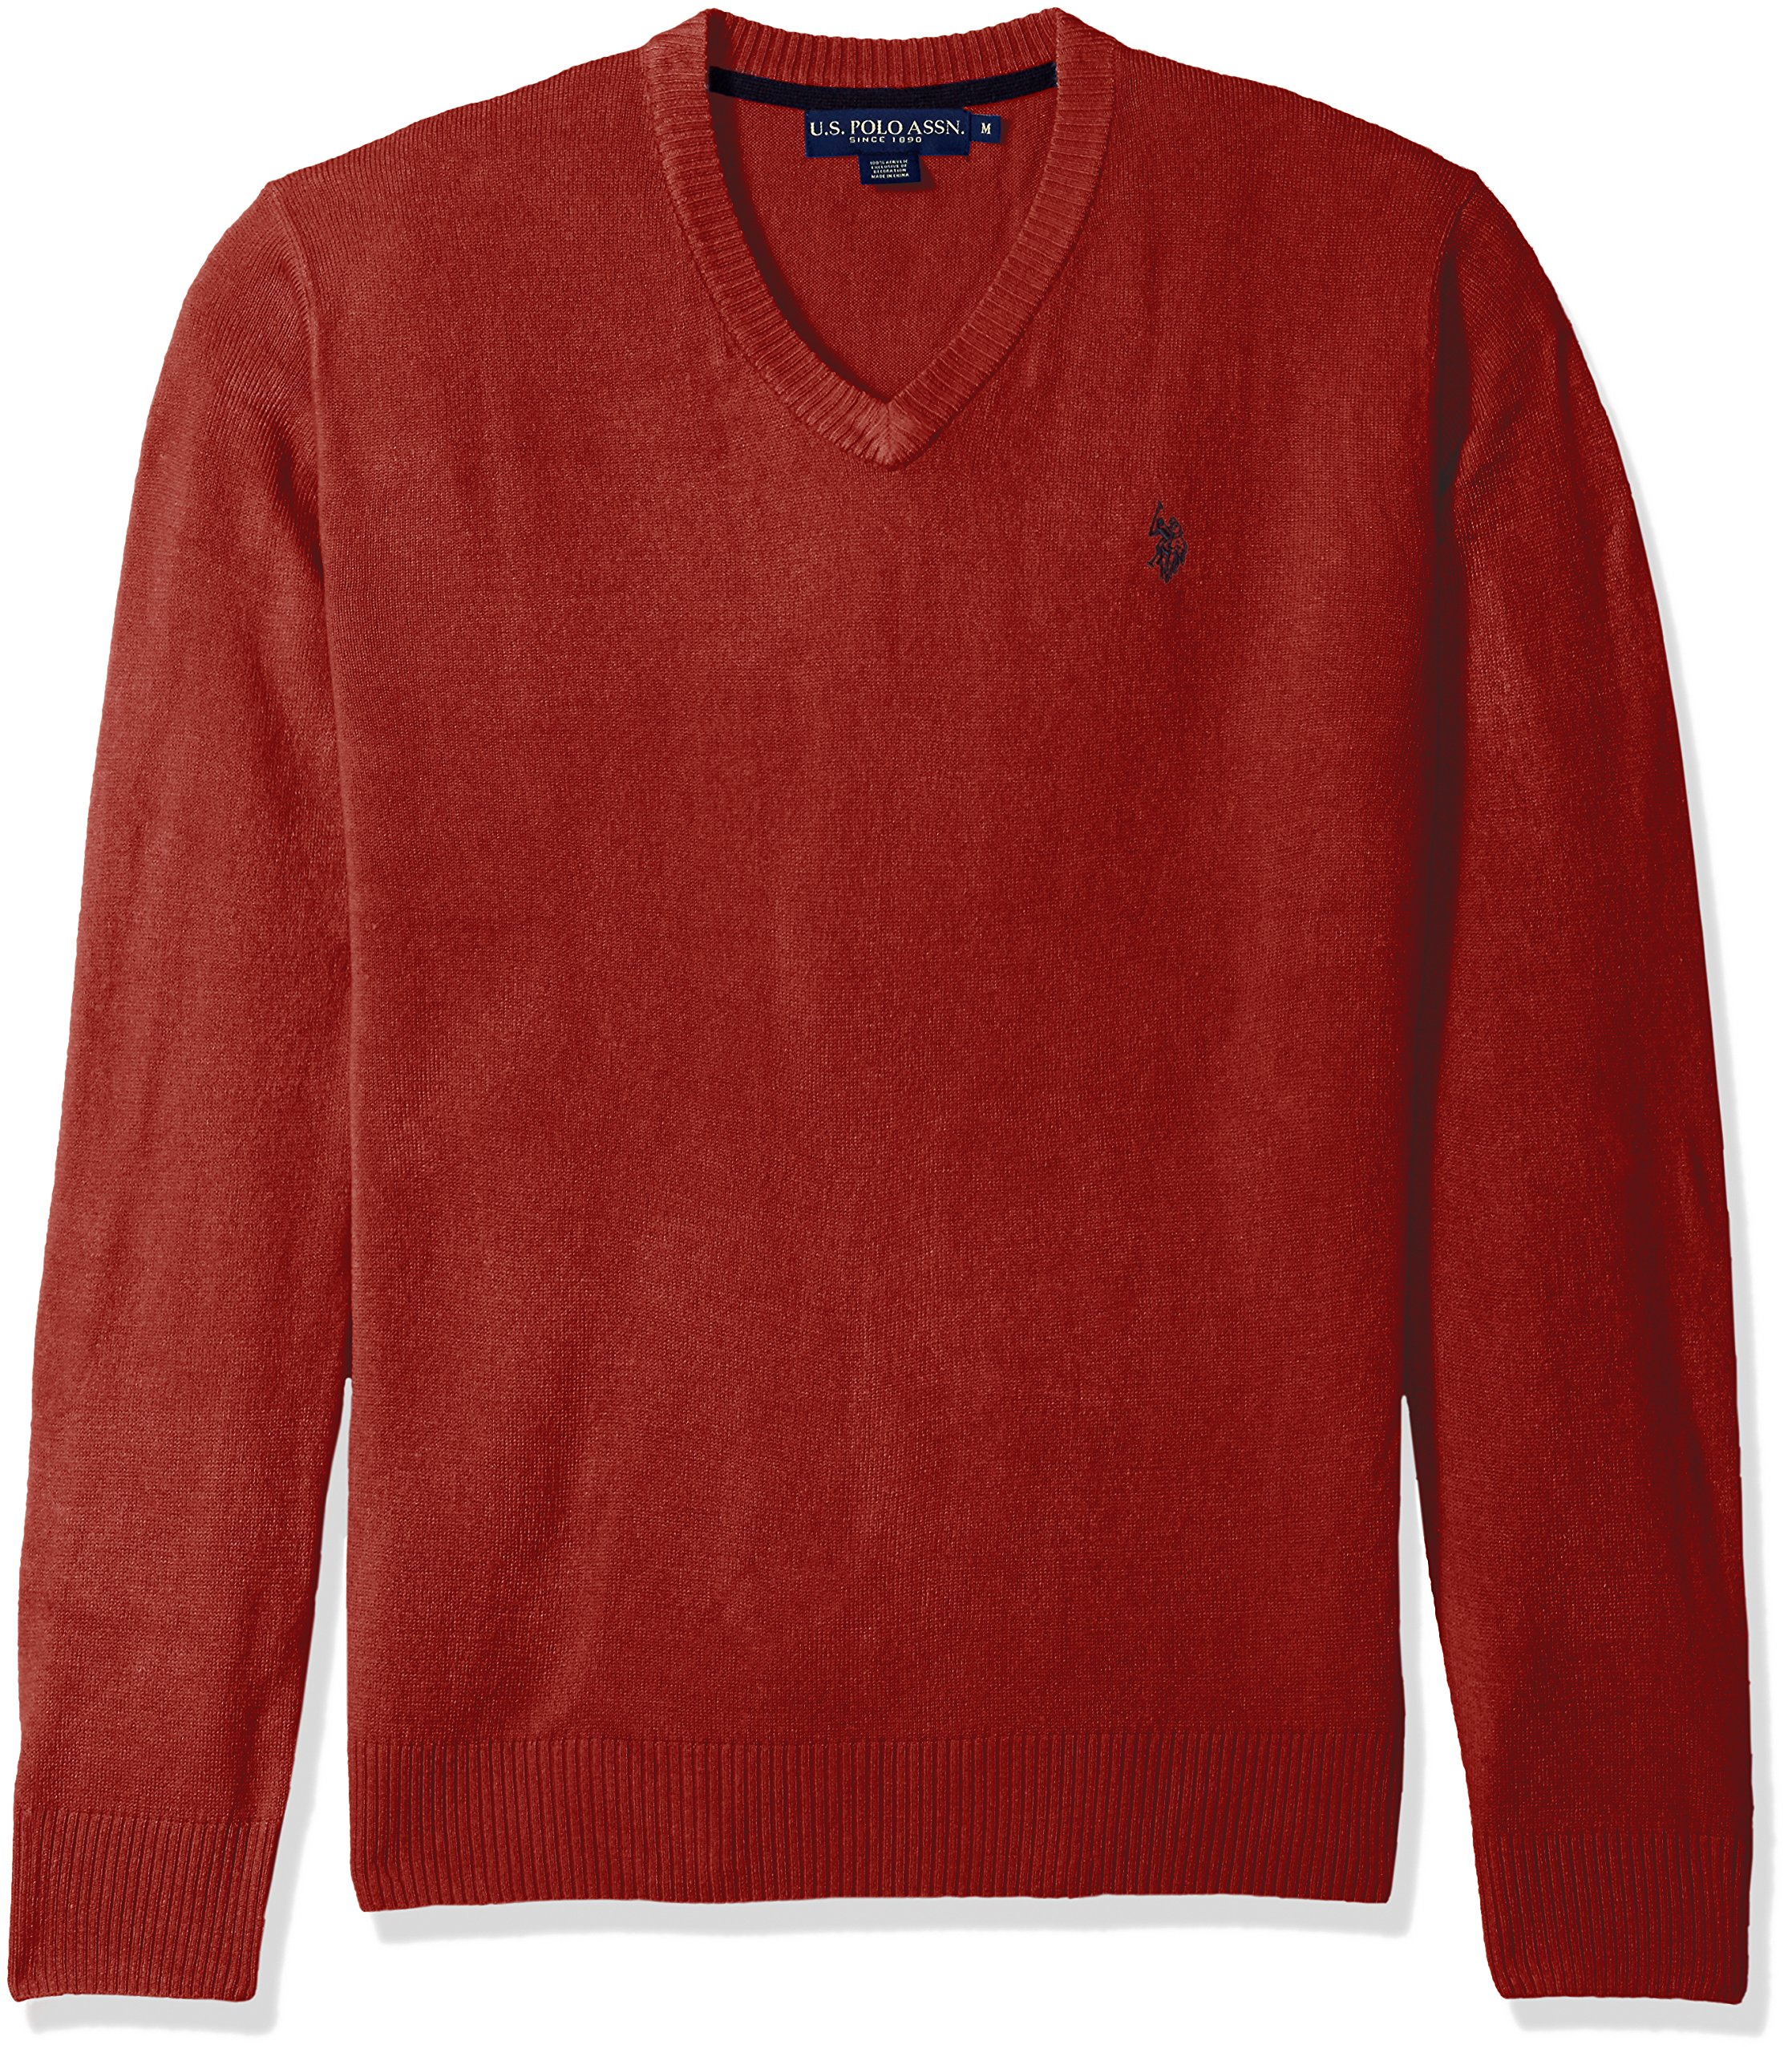 U.S. Polo Assn. Men's Solid V-Neck Sweater, Red, Small